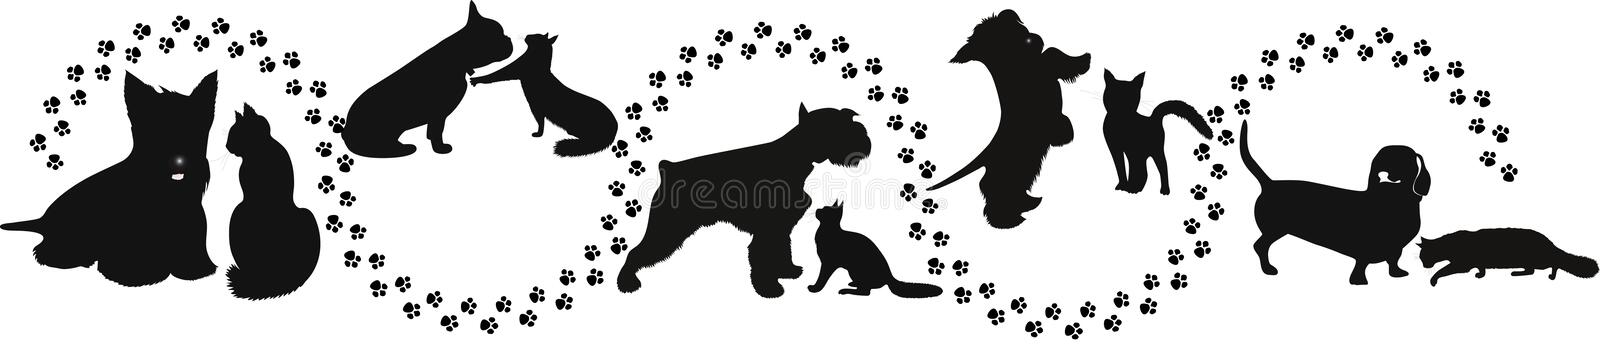 Animals cats and dogs royalty free illustration